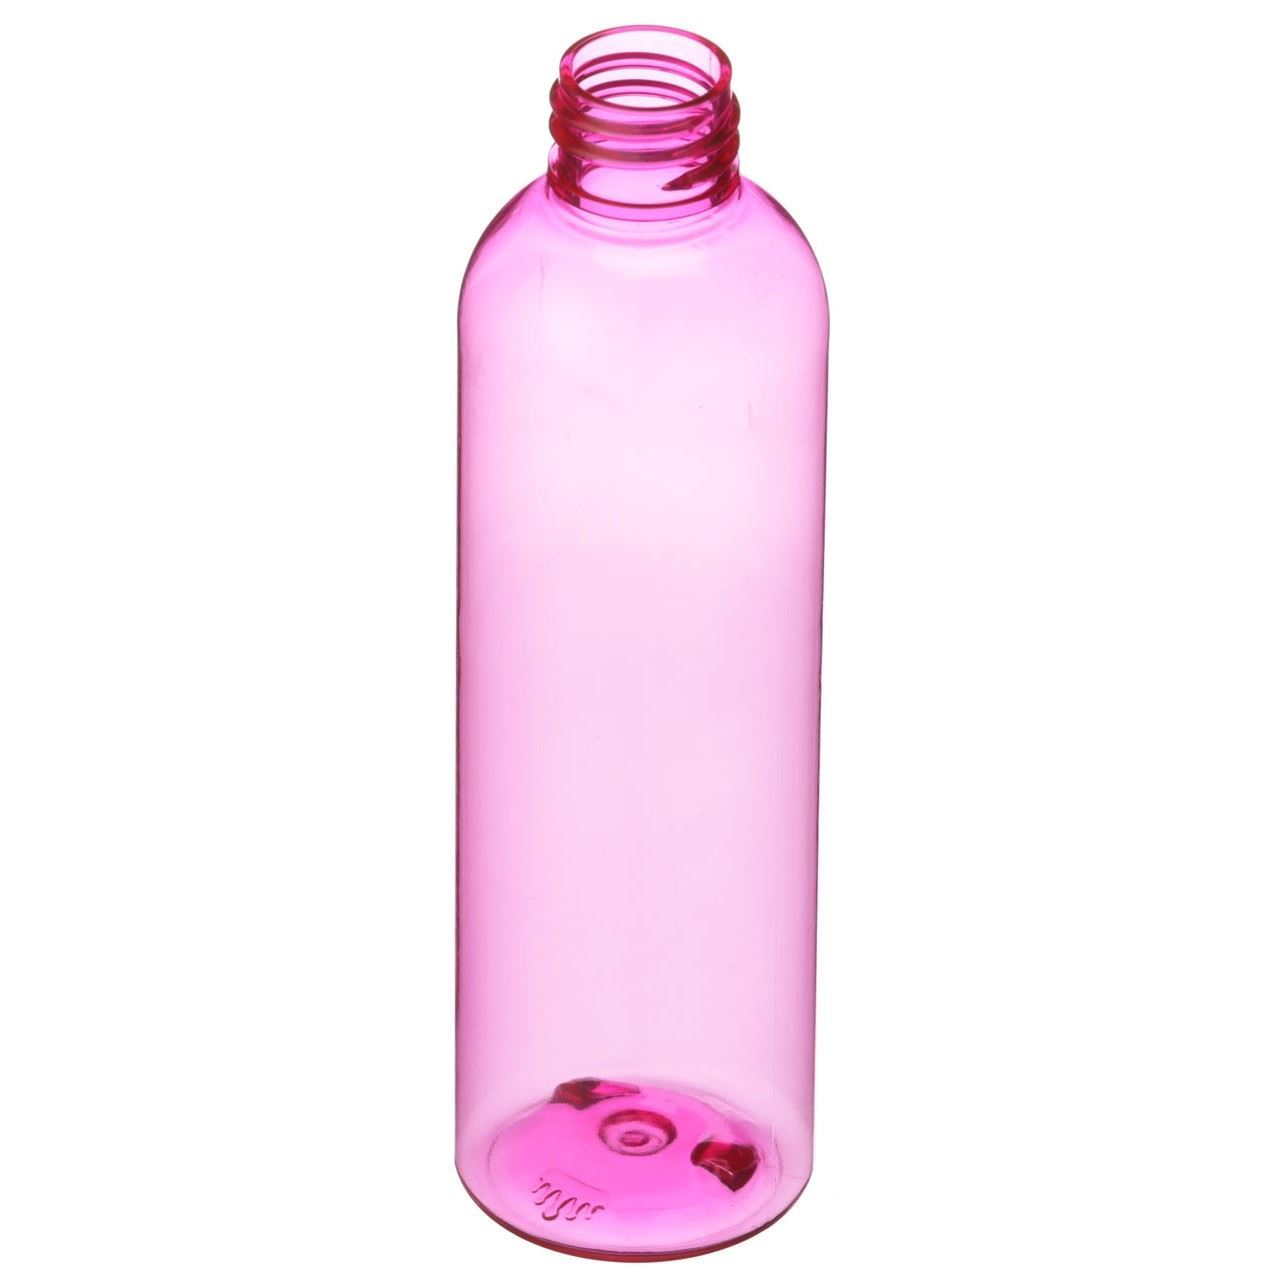 71de22b904 360 Product Spin Icon 4 oz Pink PET Plastic Bullet Round Bottle - 20-410  Neck Finish - Angled ...